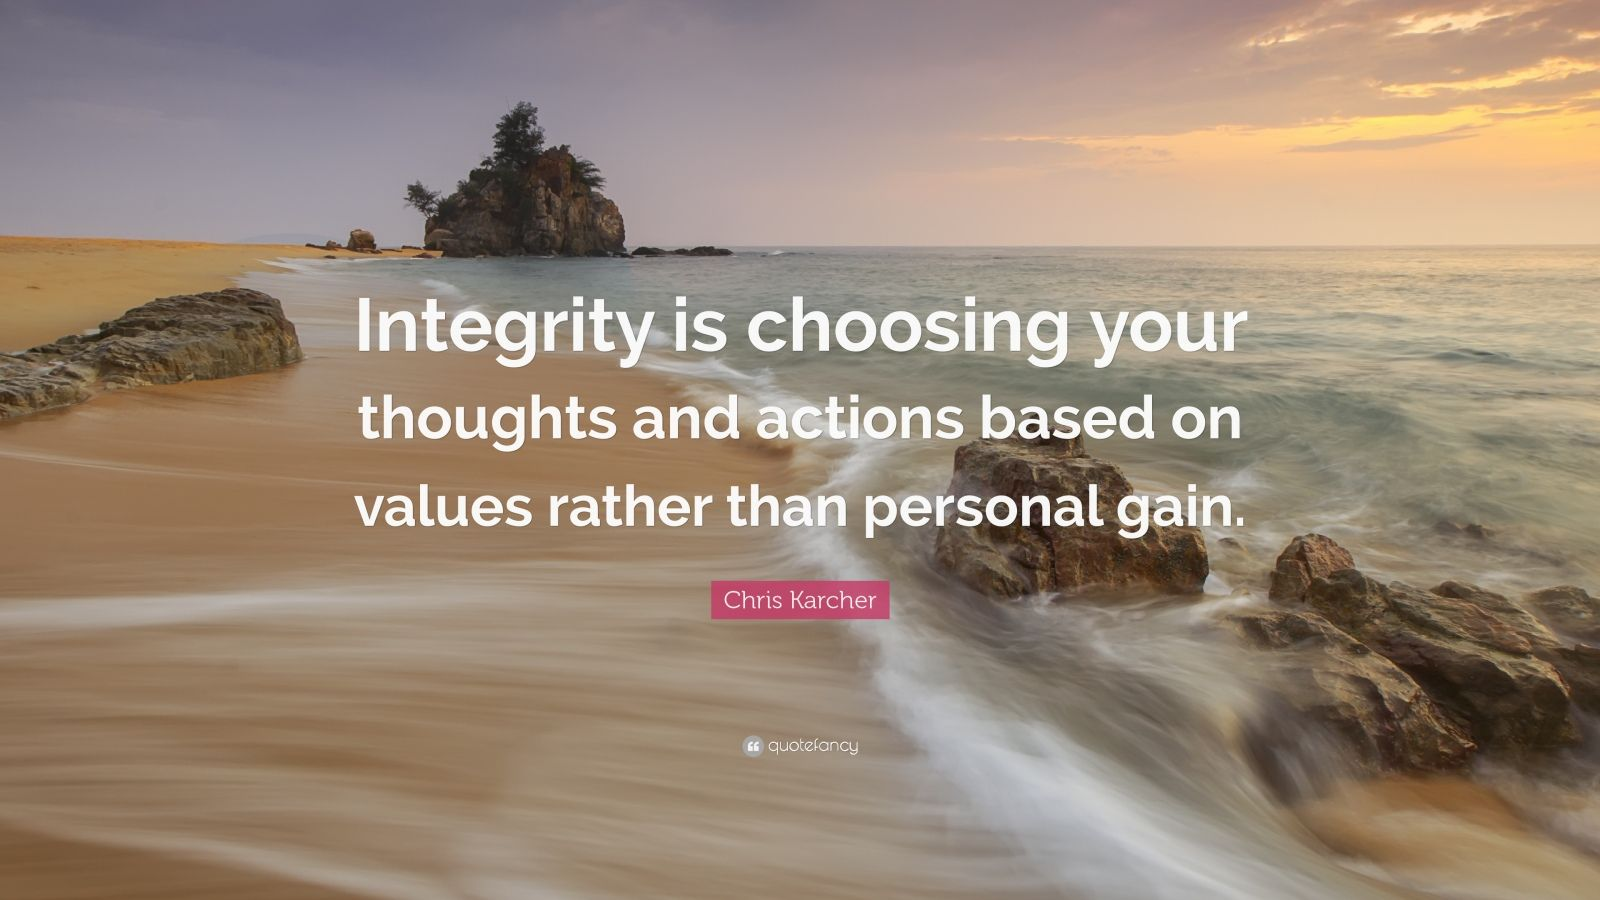 "Integrity Quotes: ""Integrity is choosing your thoughts and actions based on values rather than personal gain."" — Chris Karcher"